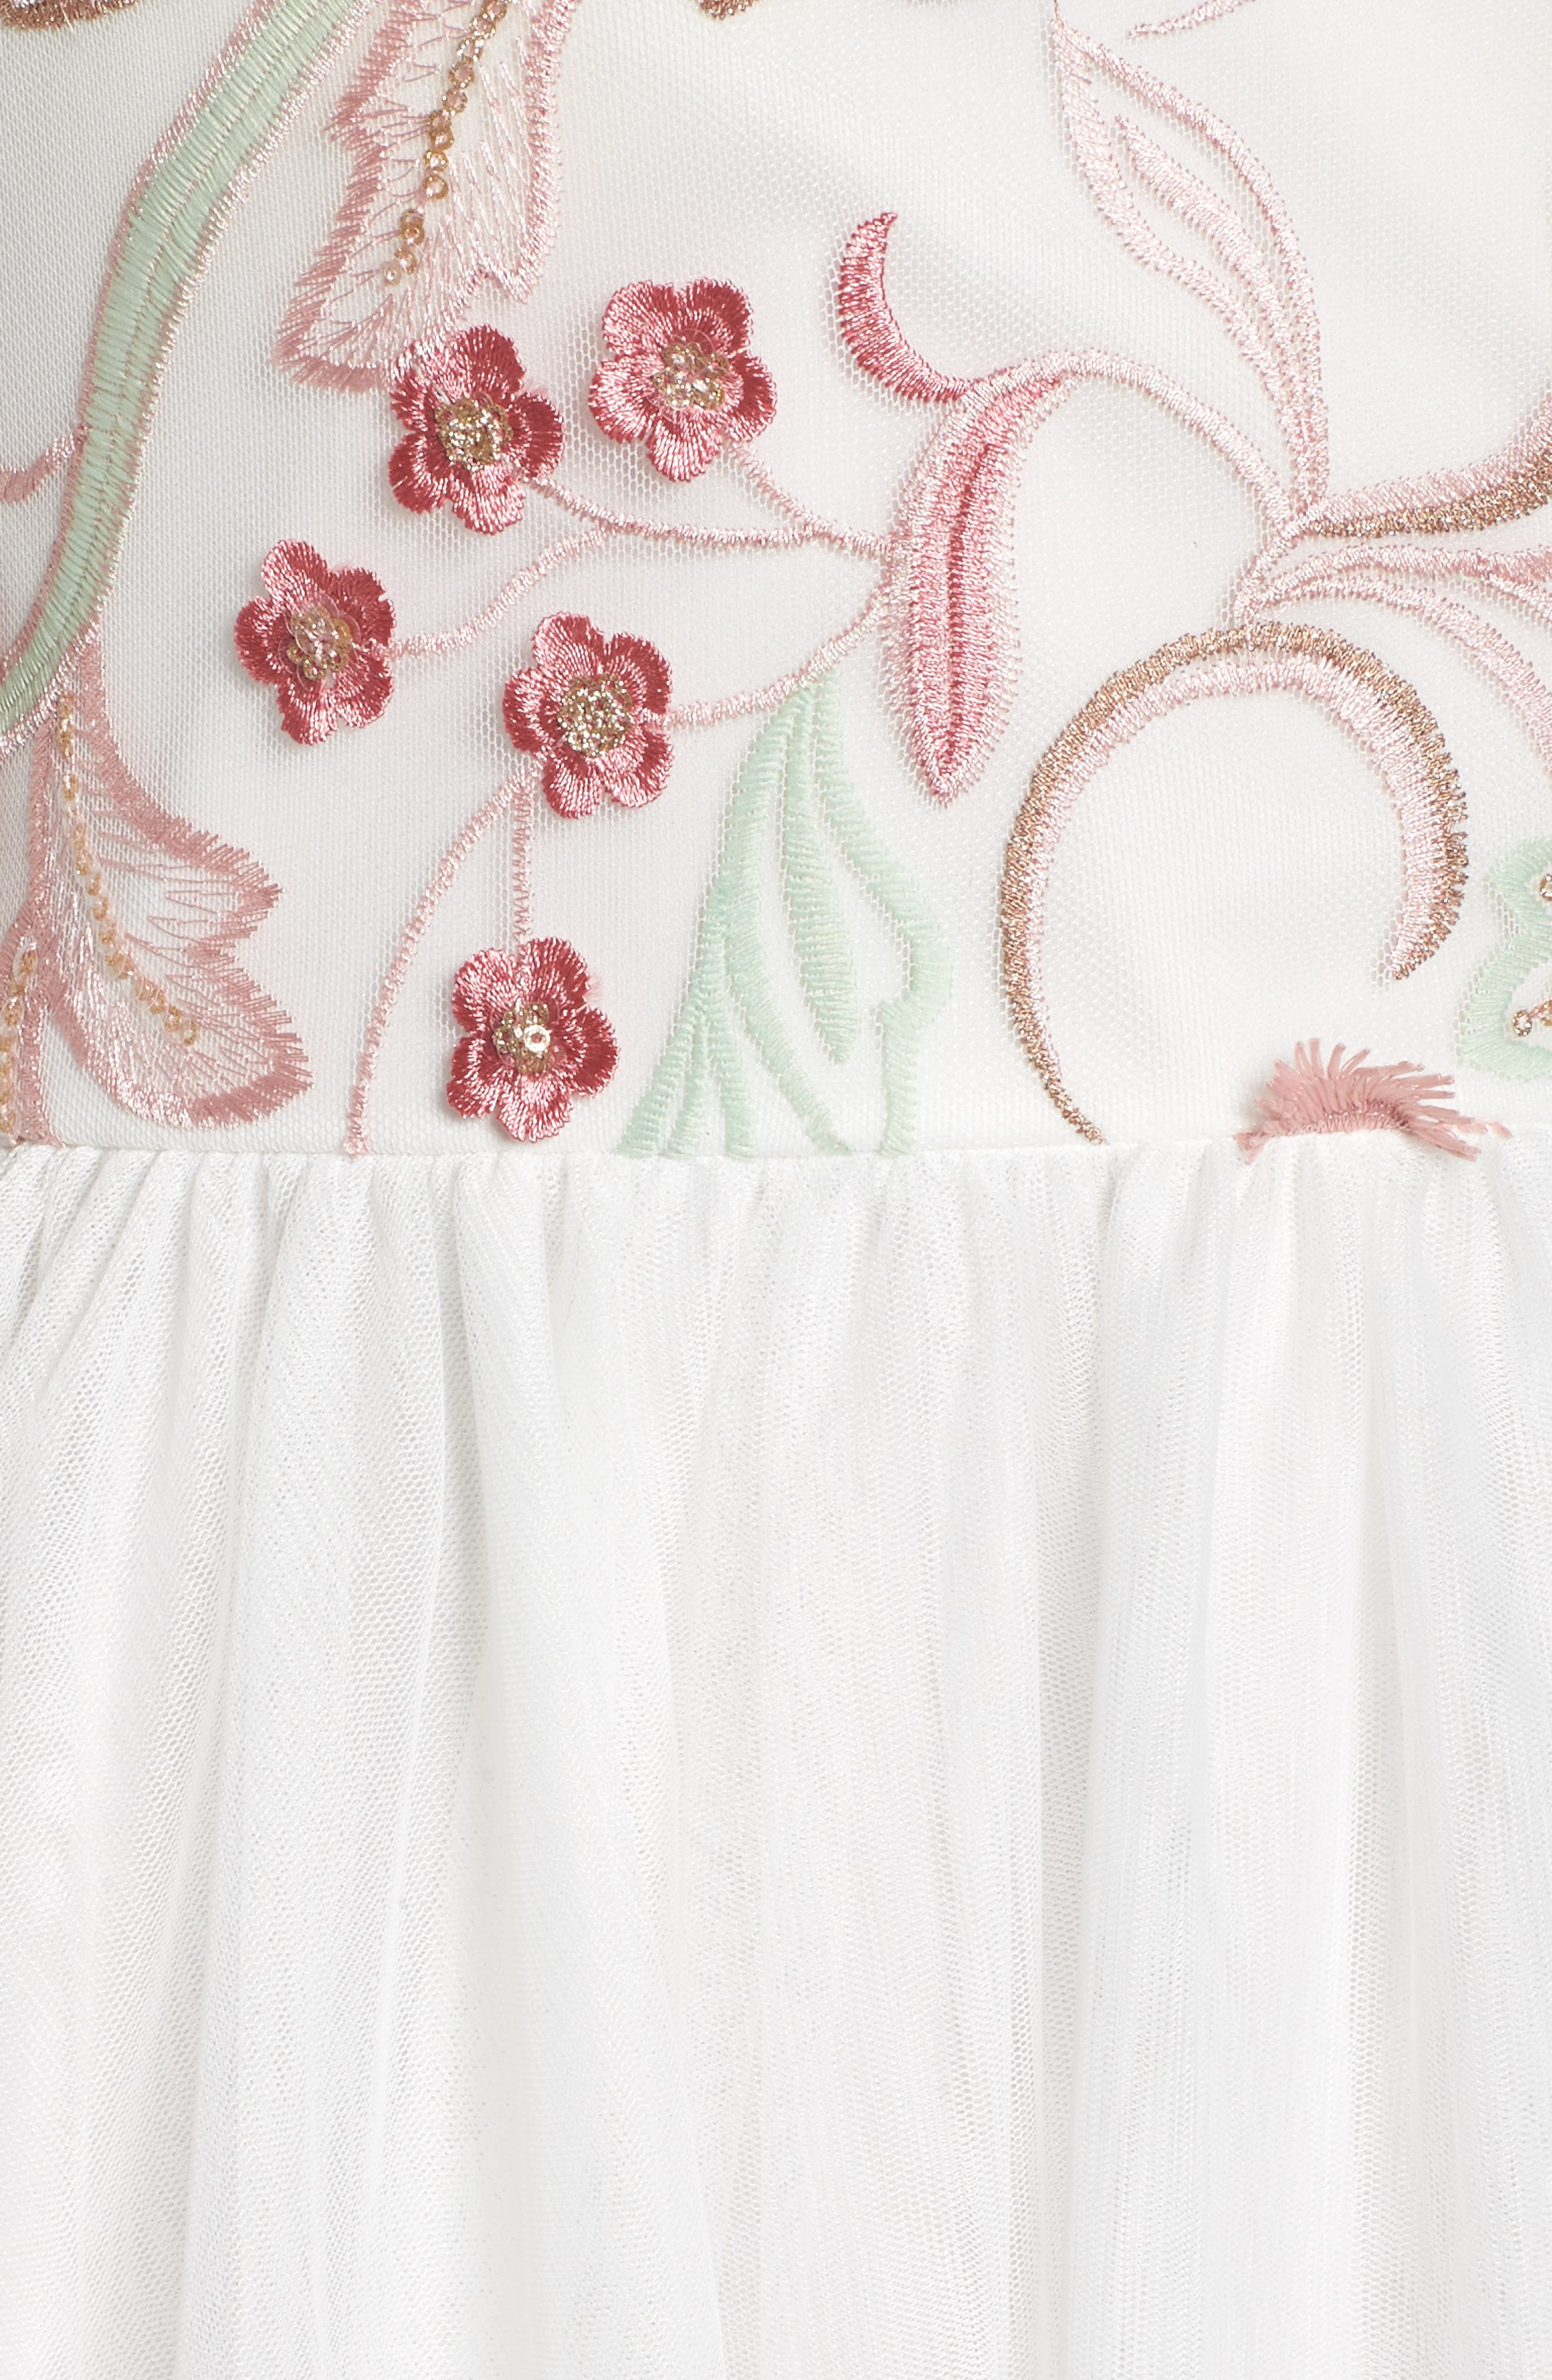 Embroidered Mesh & Tulle Halter Gown,                             Alternate thumbnail 5, color,                             Ivory/ Blush